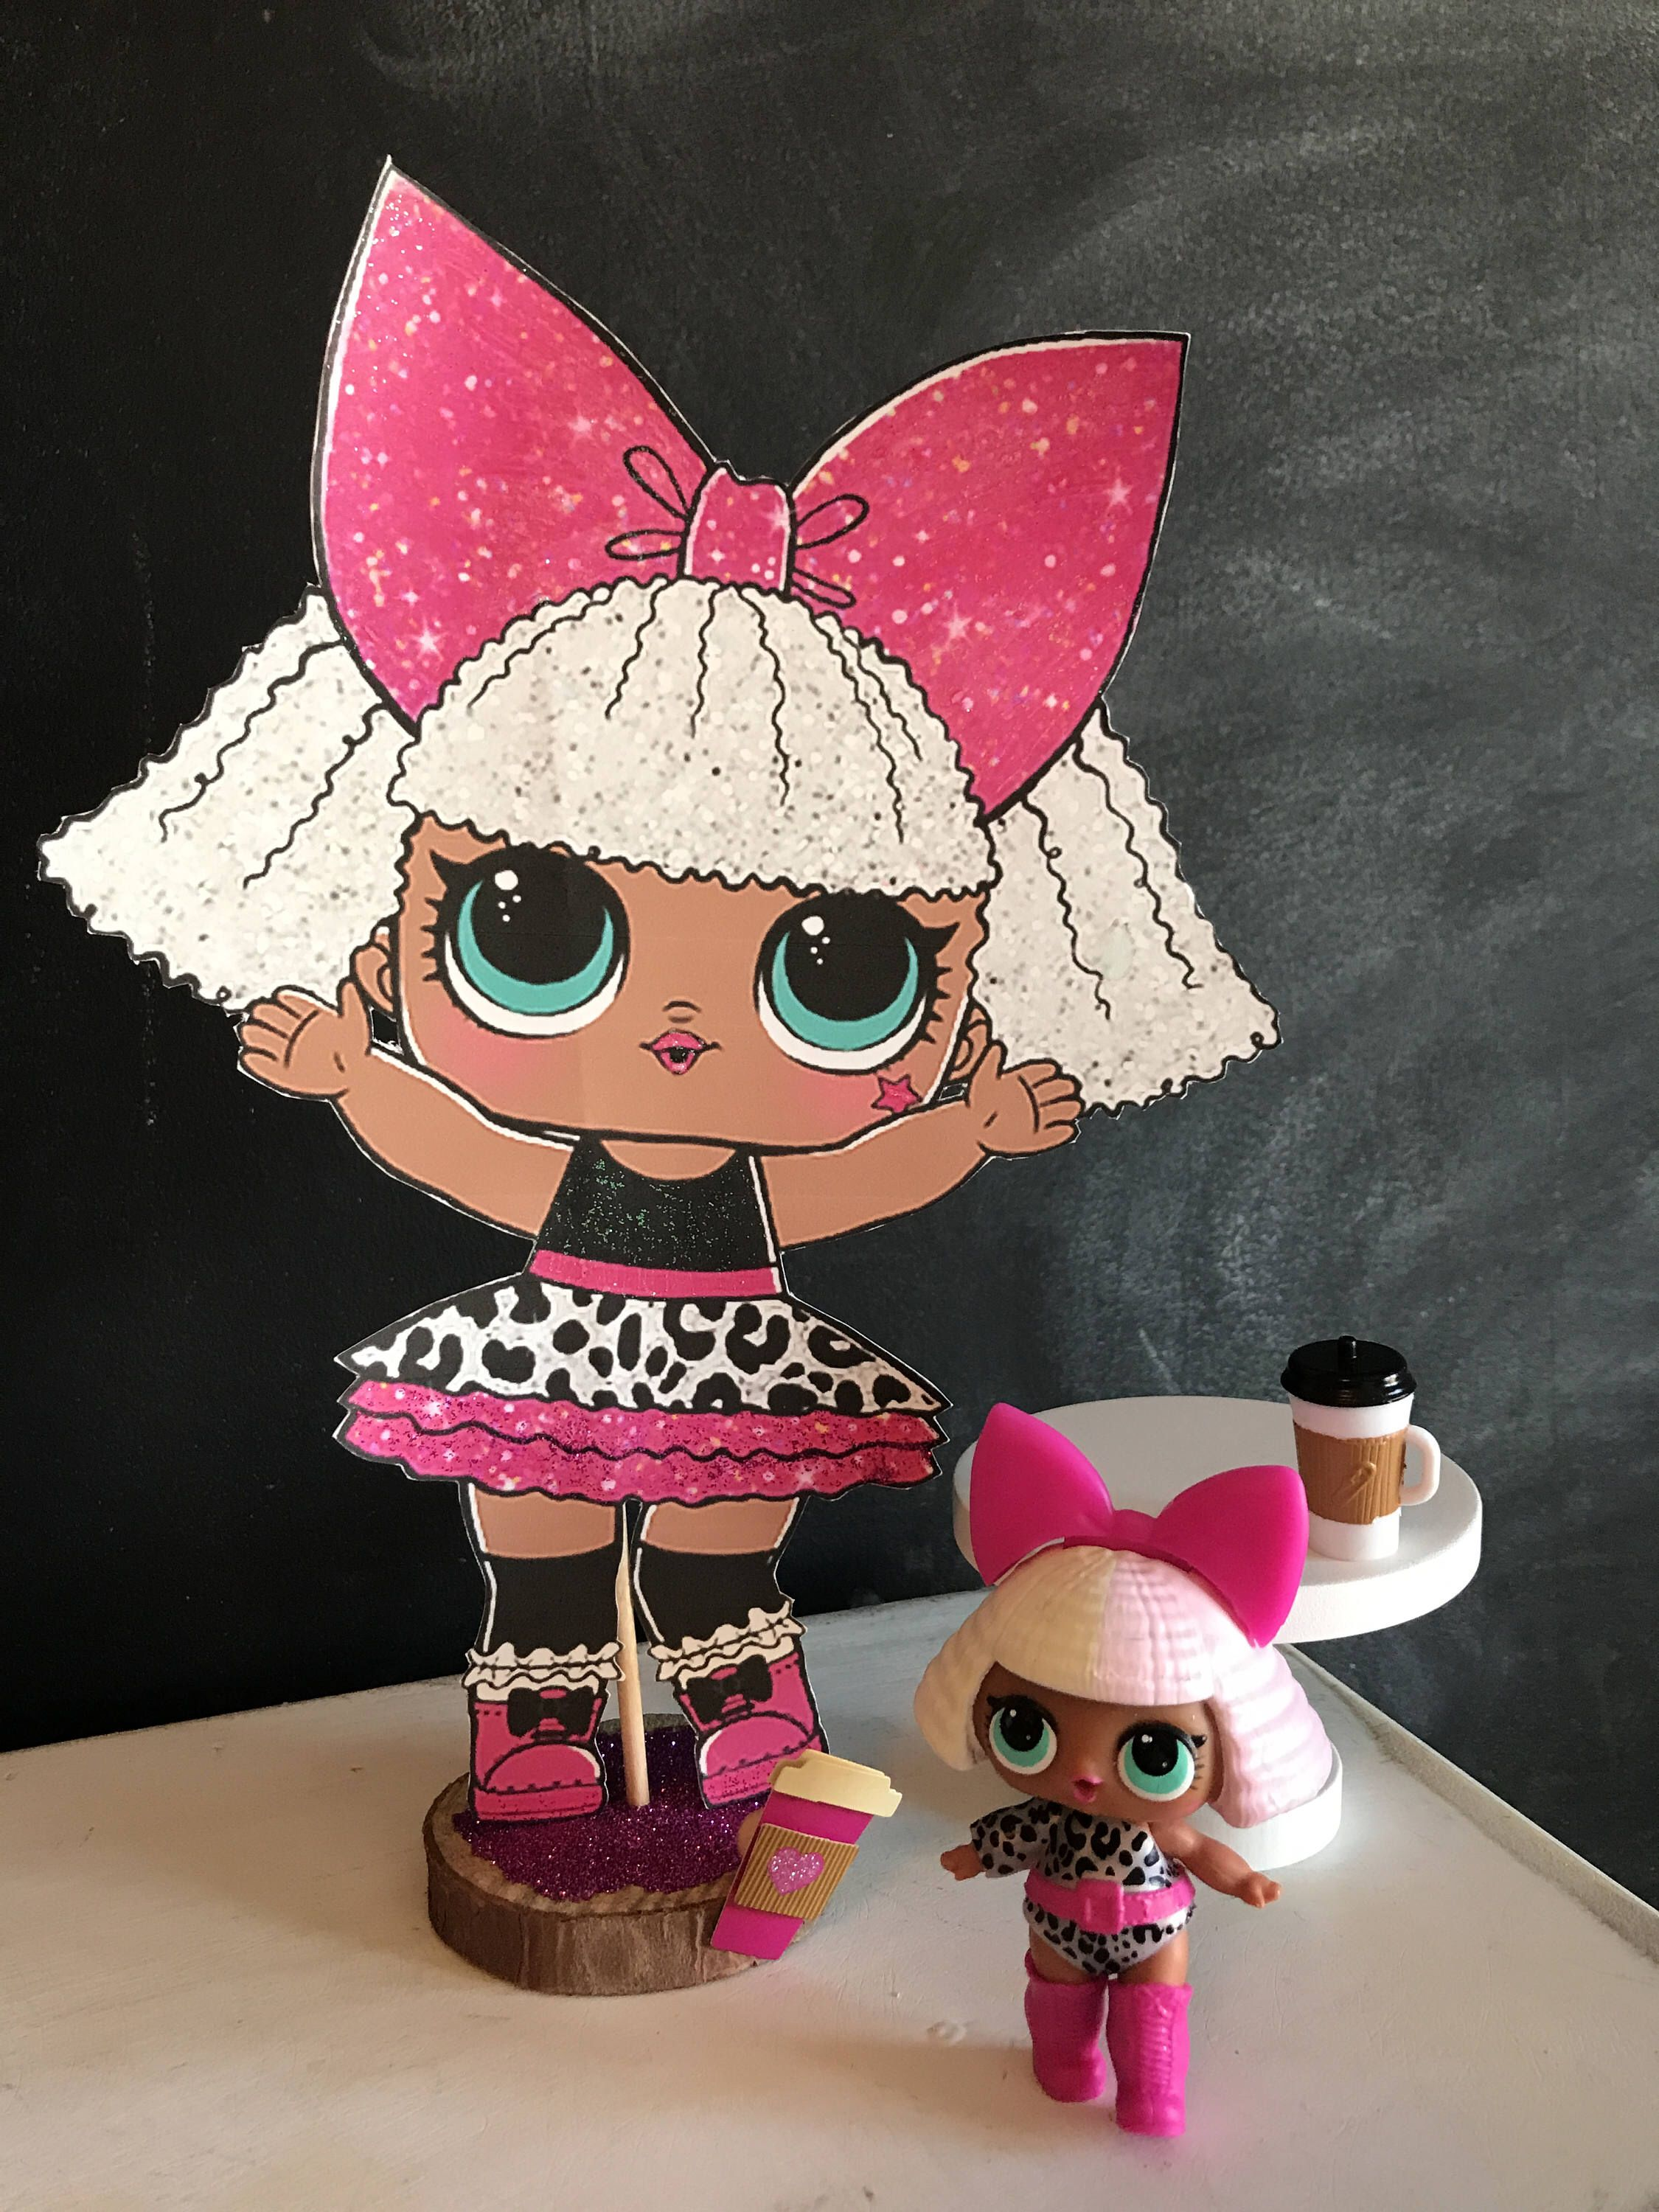 Pin by christina reyna on lol surprise party ideas surprise party decorations lol dolls doll - Diva lol surprise ...